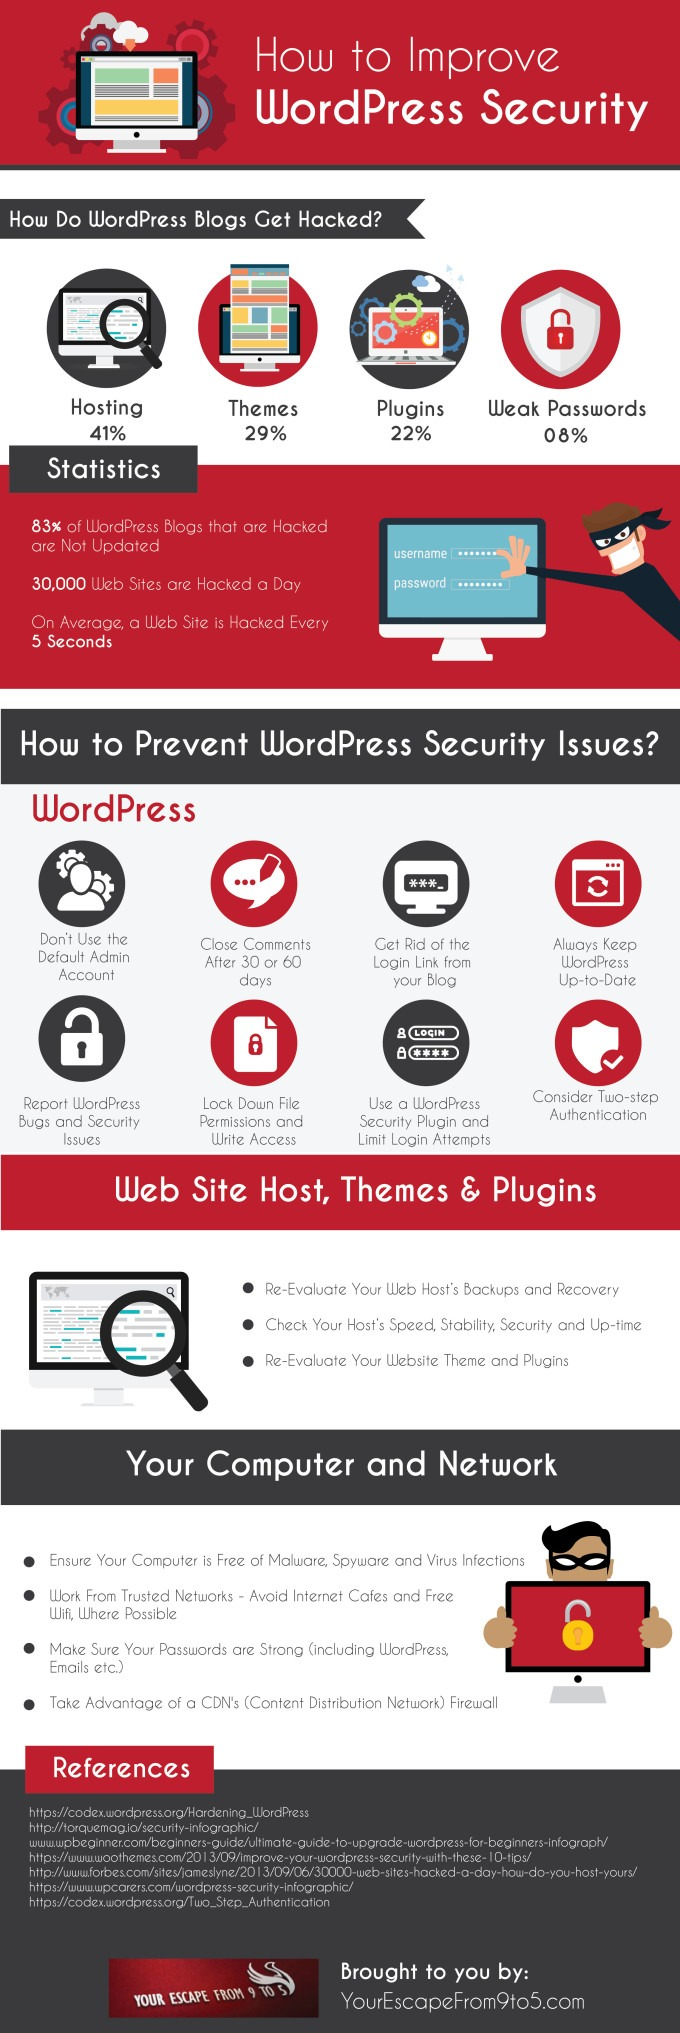 Strengthen your WordPress website security